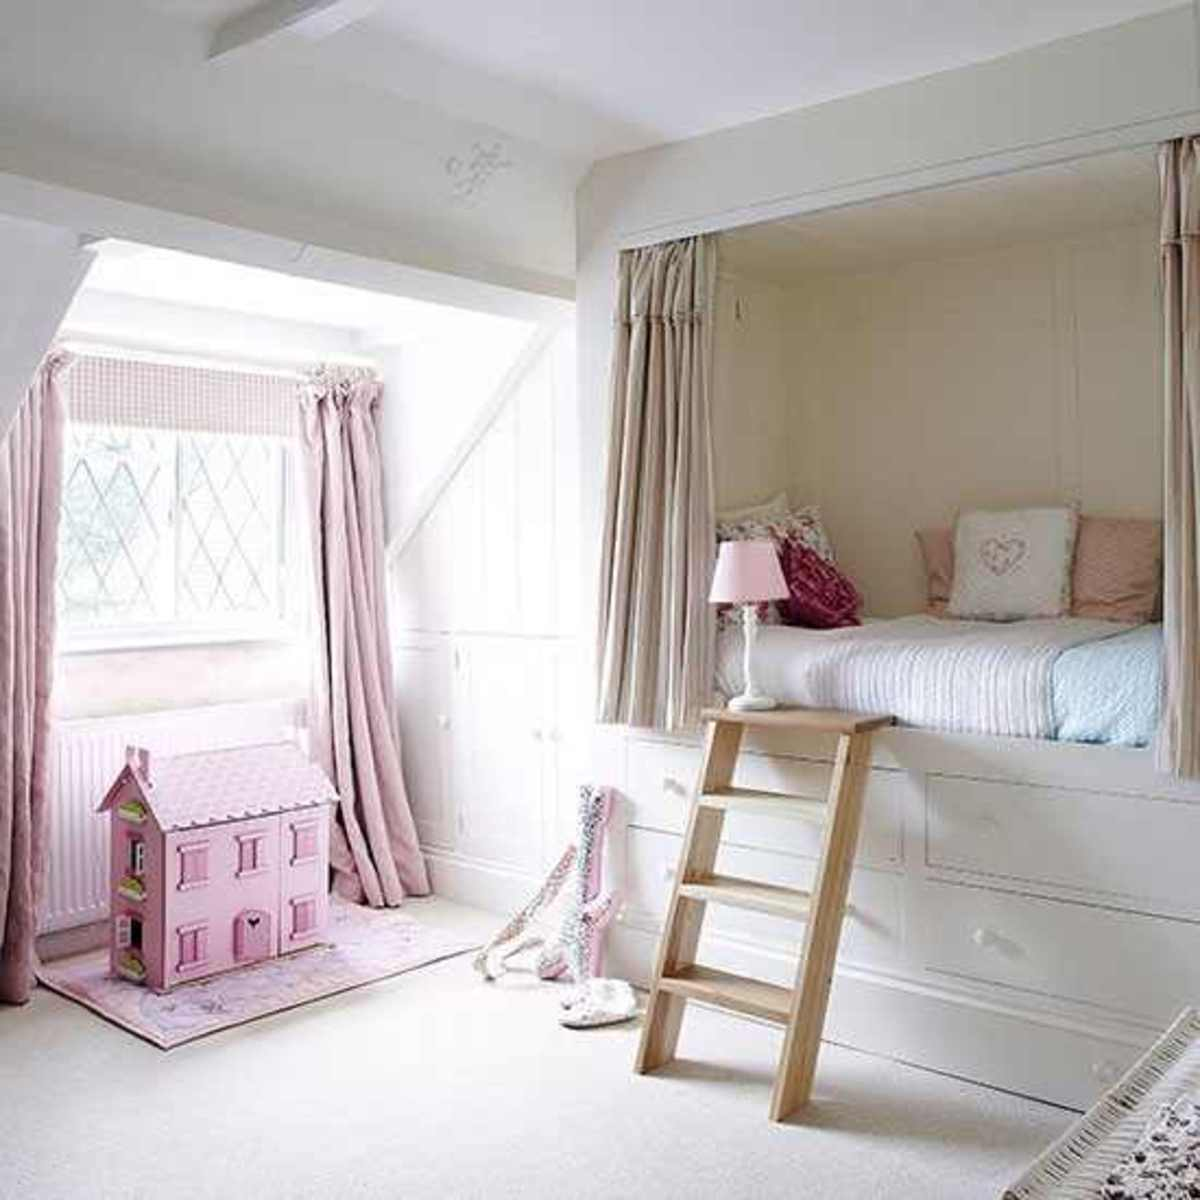 Girls-bedroom-with-built-in-bed--Country-Homes-and-Interiors--Housetohome.co.uk